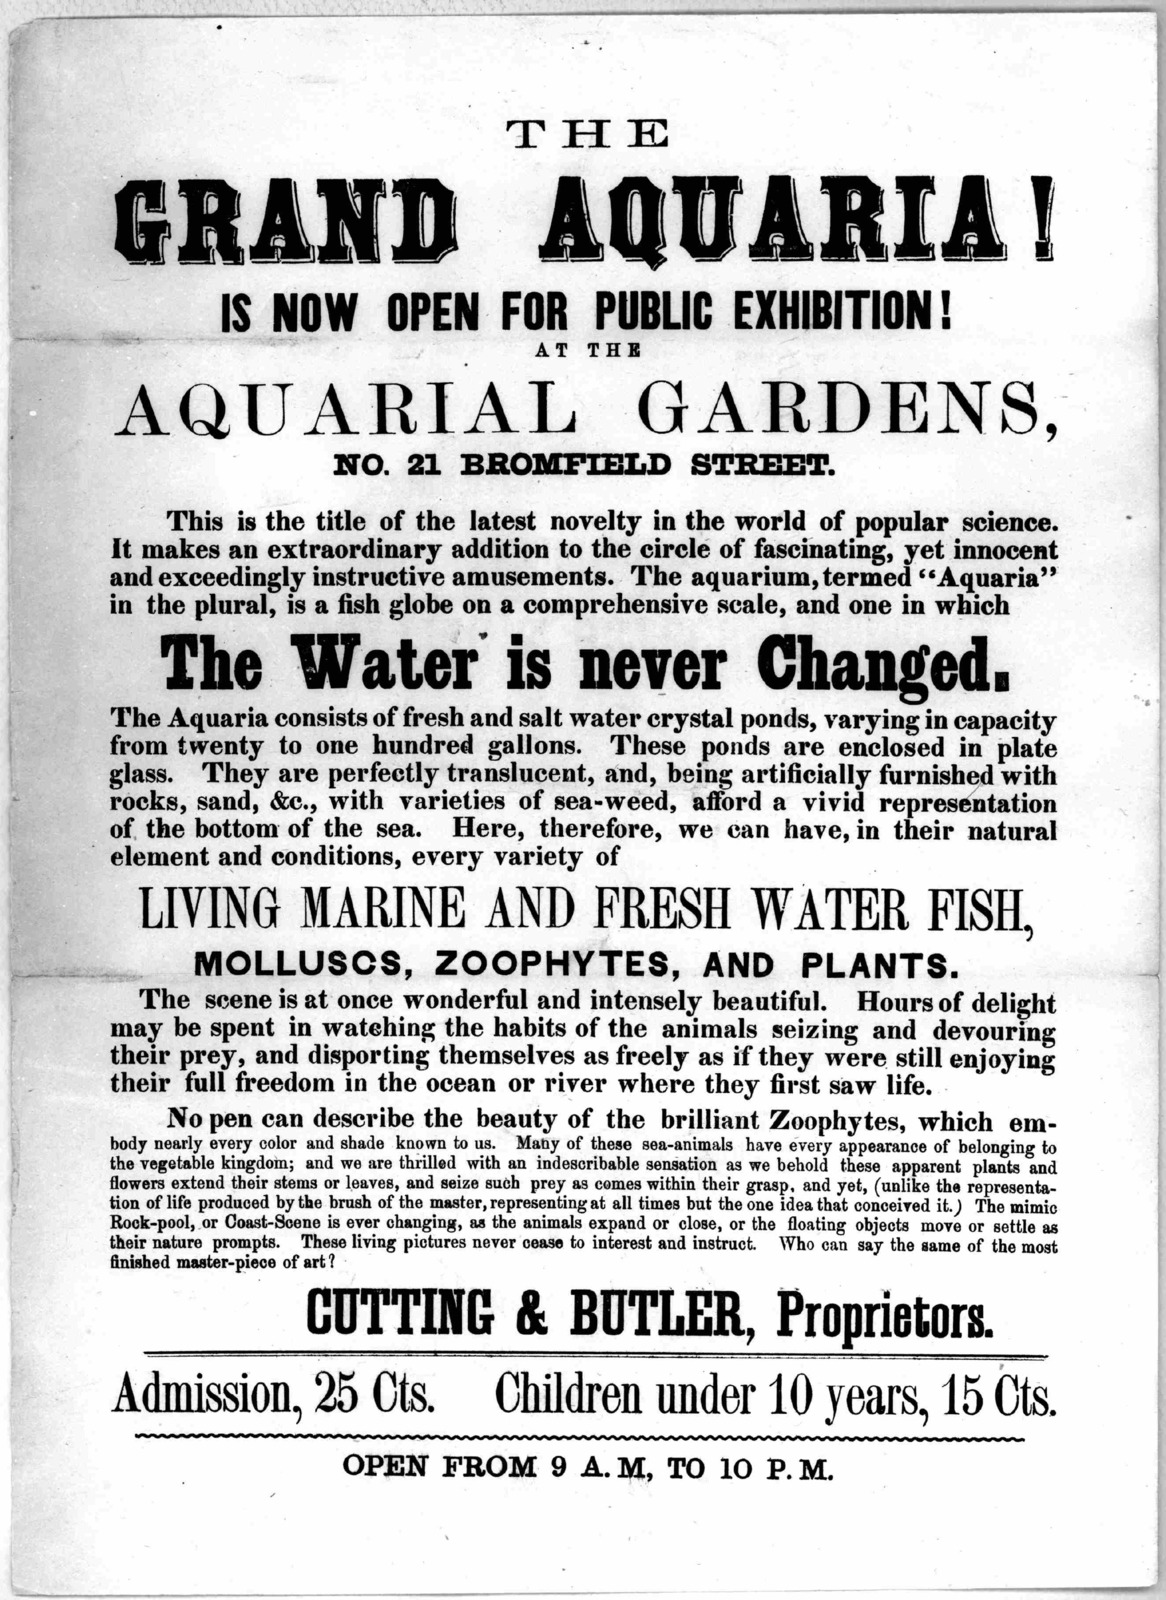 The grand aquaria! is now open for public exhibition! at the Aquarial gardens, No. 21 Bromfield Street ... Cutting & Butler, proprietors ... [Boston. n. d.].